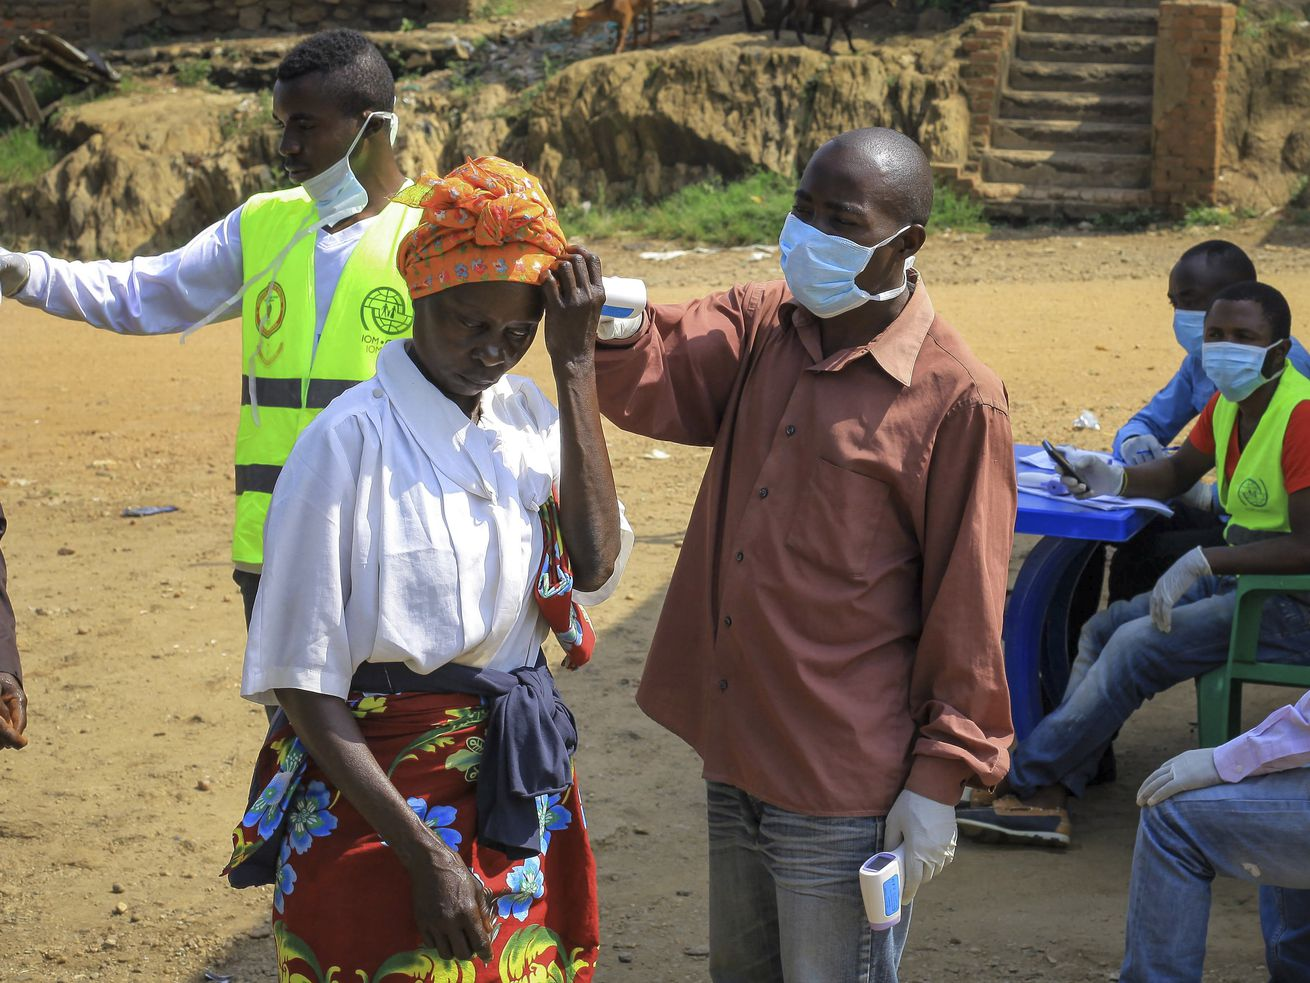 People crossing the border from Eastern Congo into Uganda have their temperature taken to check for symptoms of Ebola on June 12, 2019.